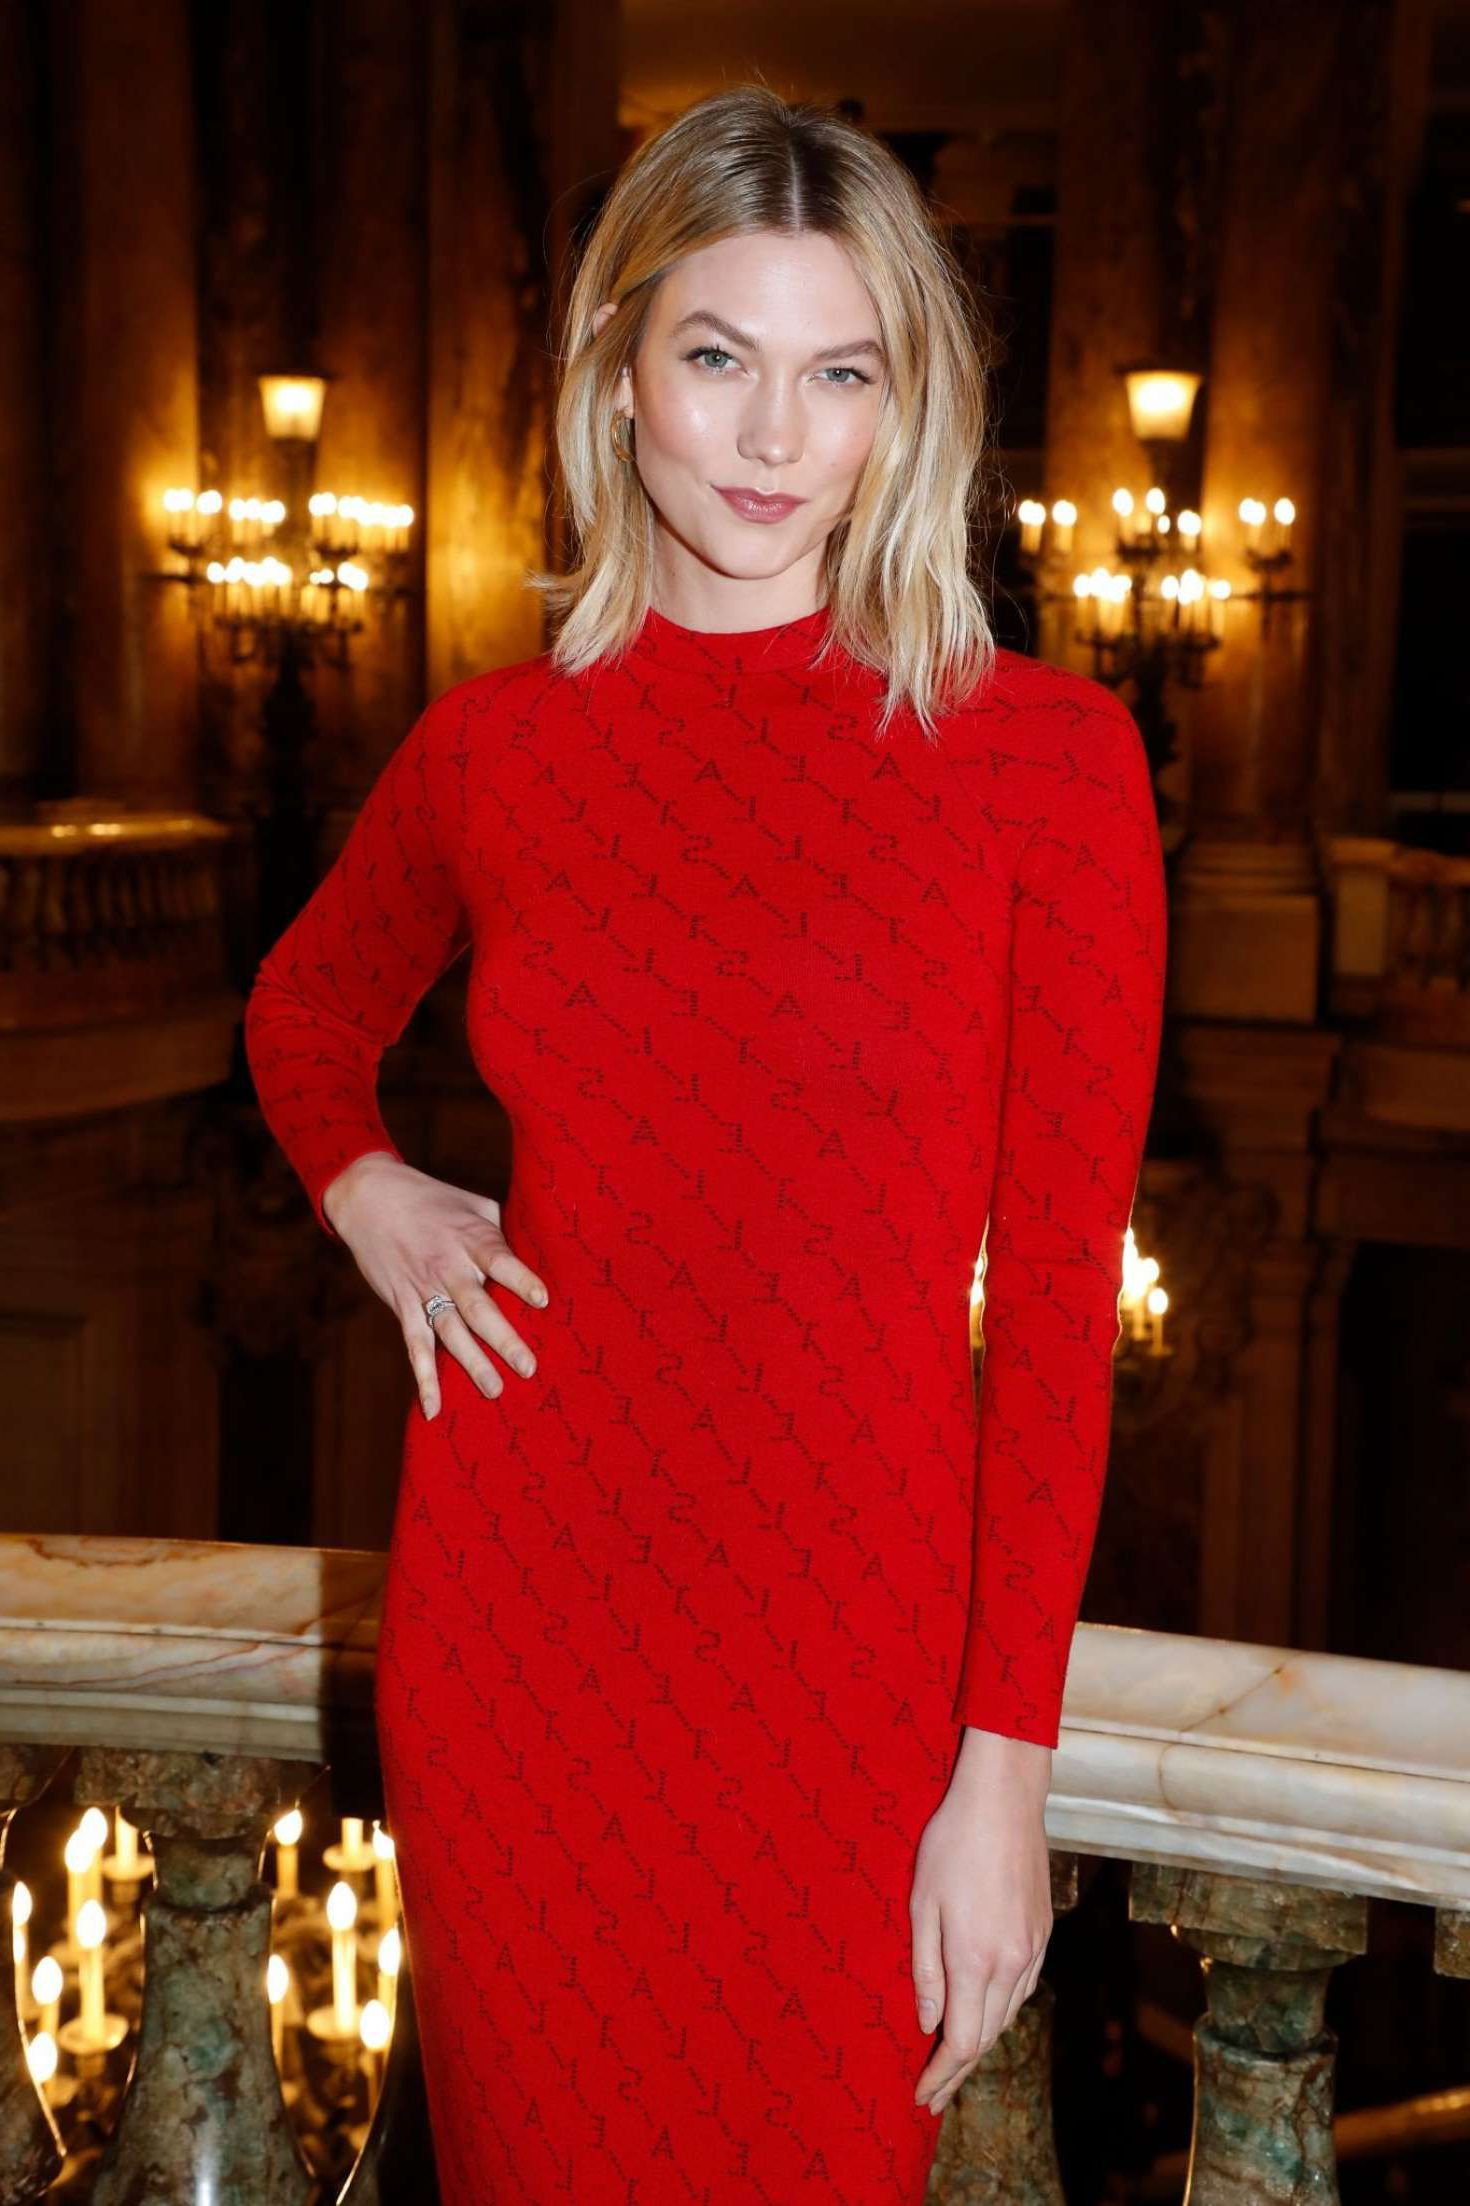 Photo 02: Karlie Kloss in red long dress, Paris, 2019